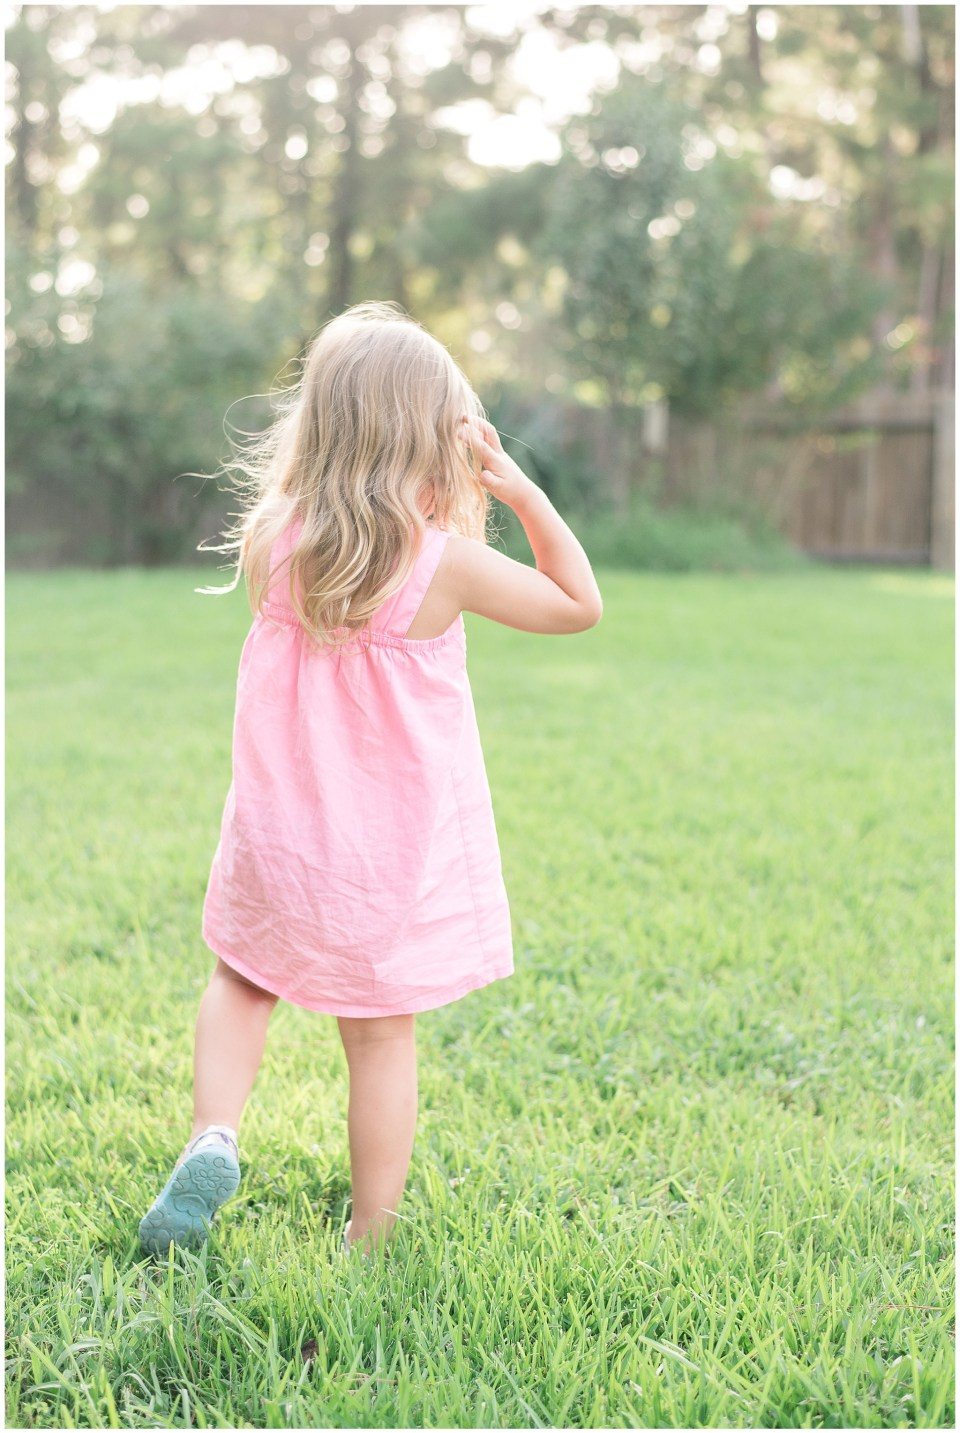 Kingwood child photographer letter to 4 year old daughter